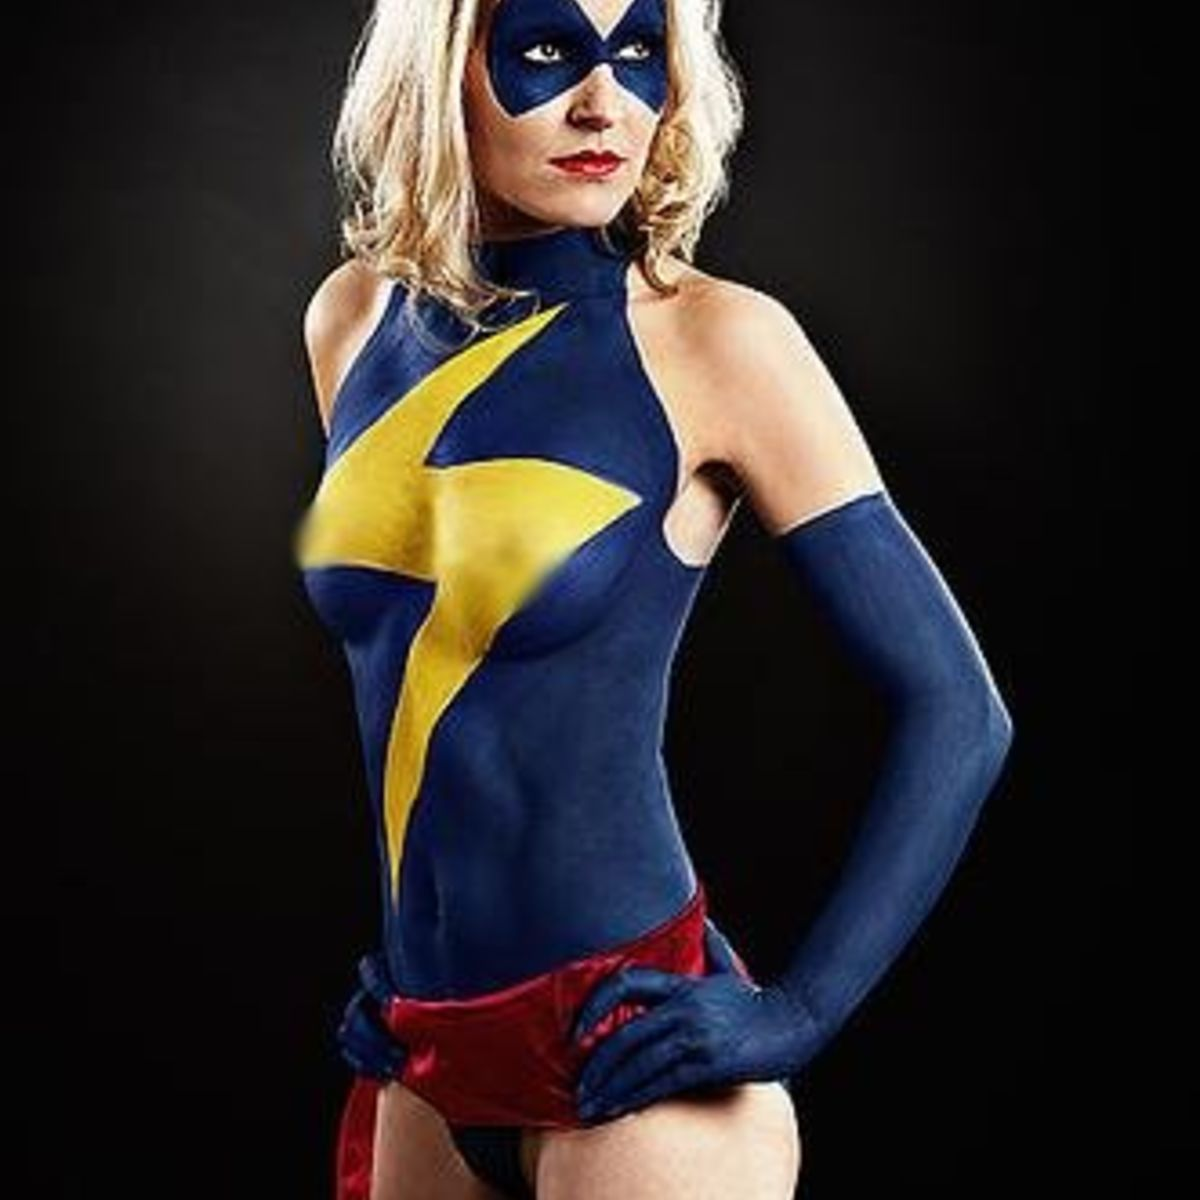 msmarvel-bodypaint-blurred.jpg